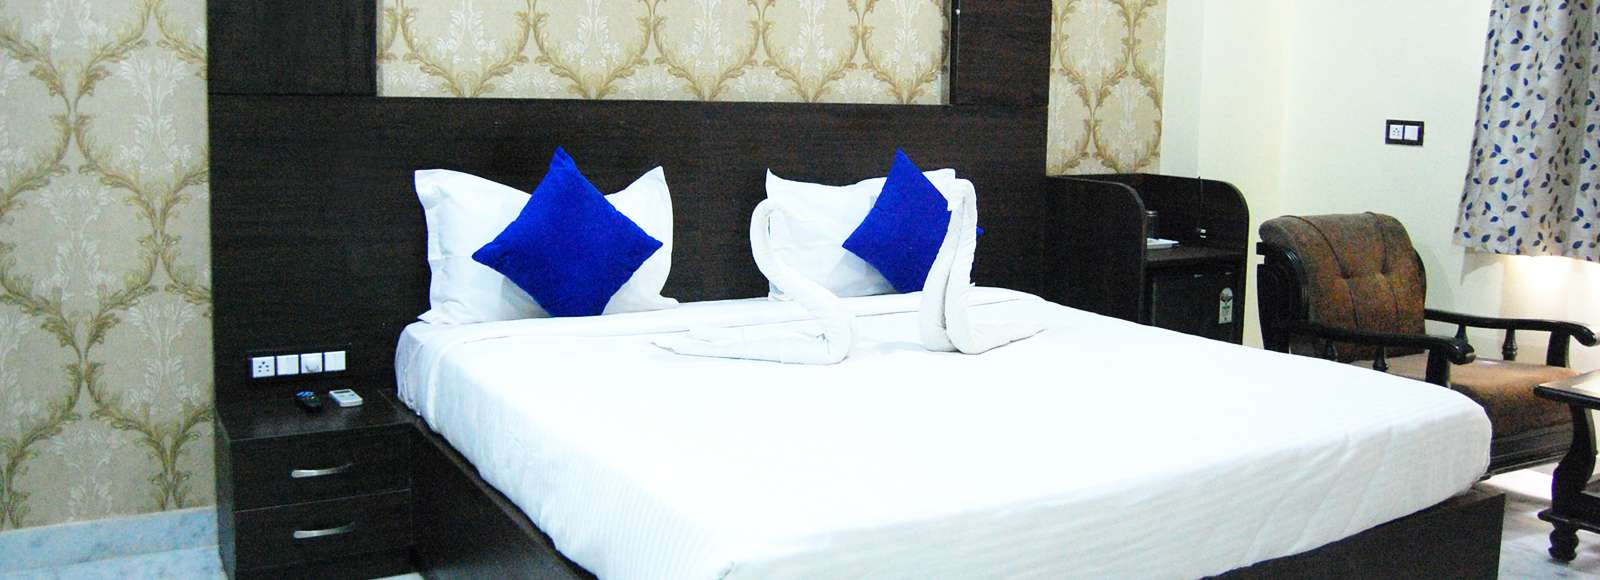 Budget_hotel_in_udaipur-compressed